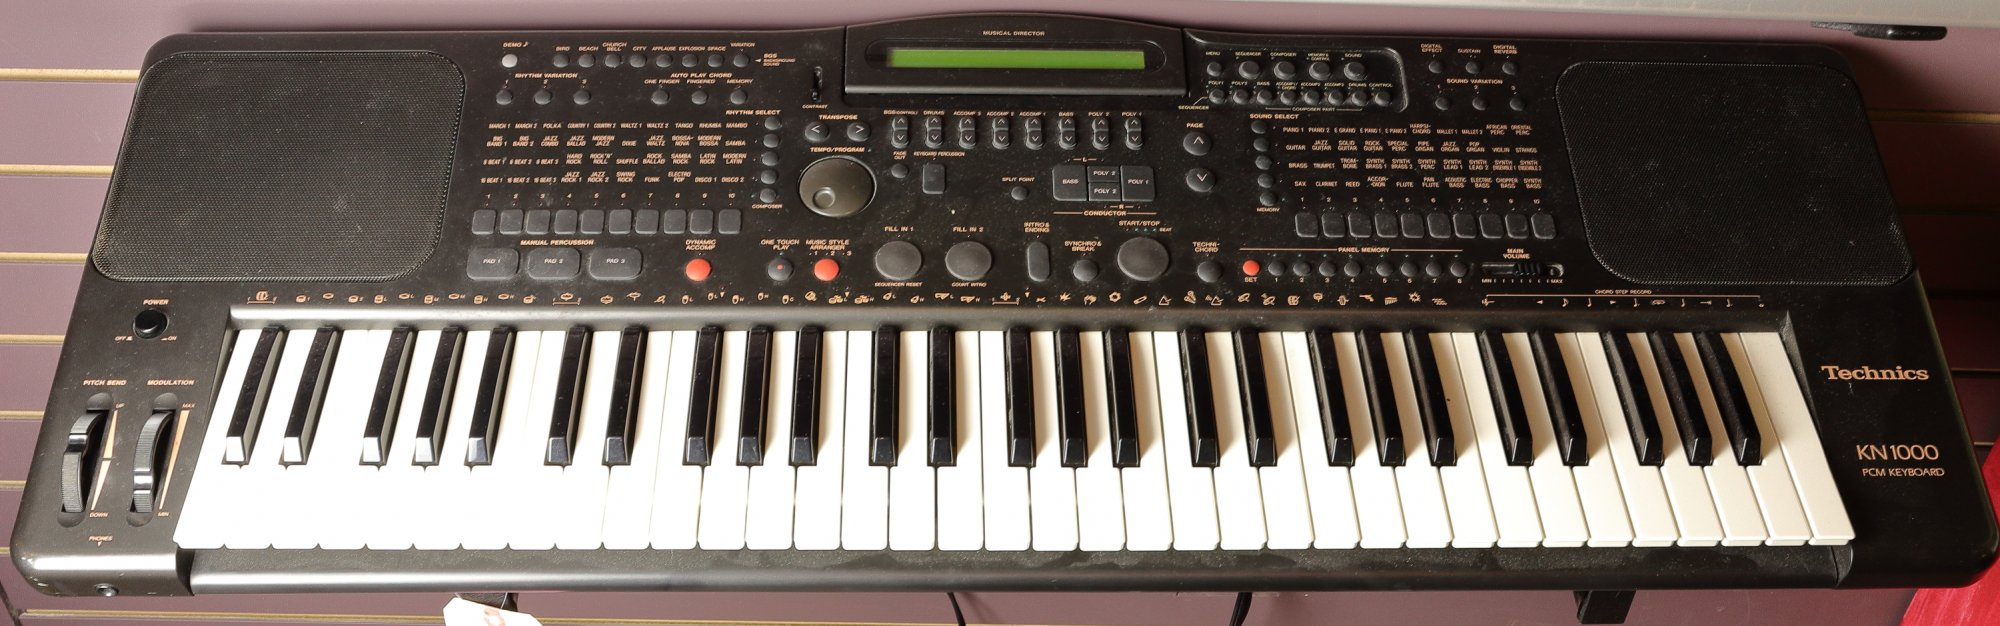 Technics KN1000 PCM Keyboard (USED)